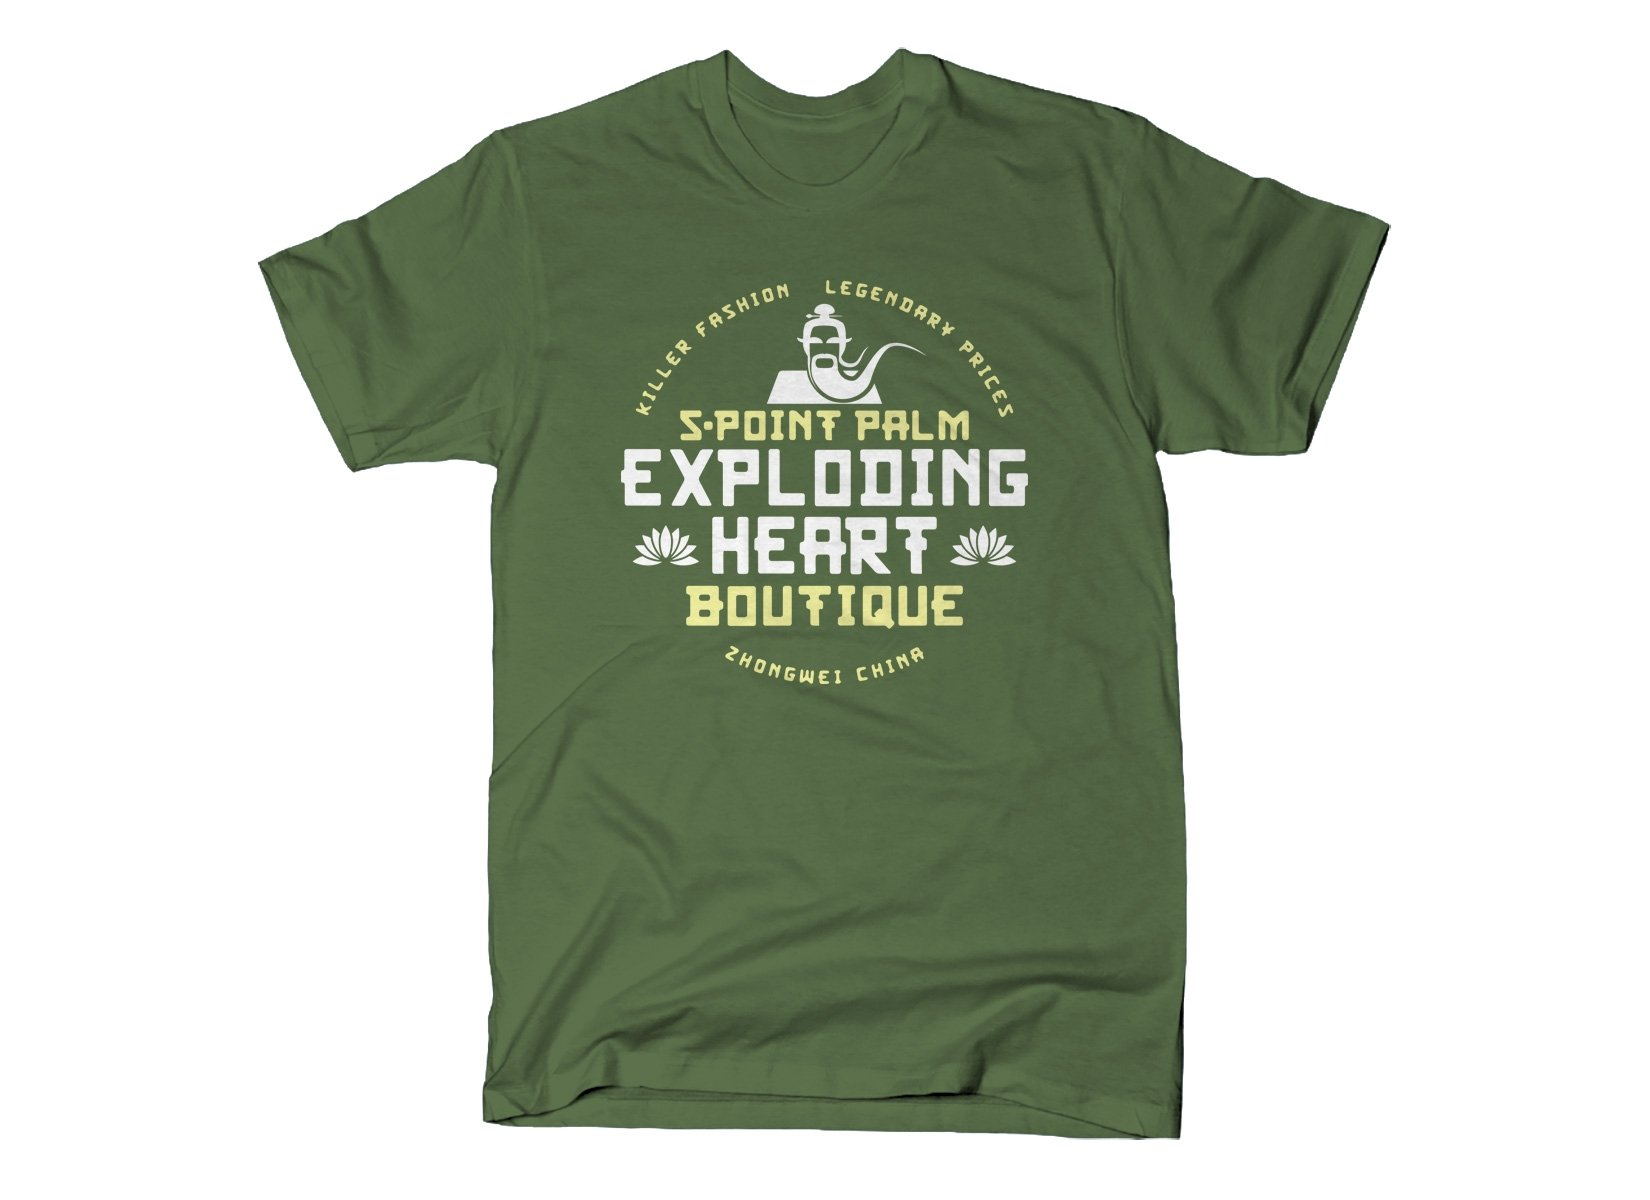 5-Point Palm Exploding Heart Boutique on Mens T-Shirt